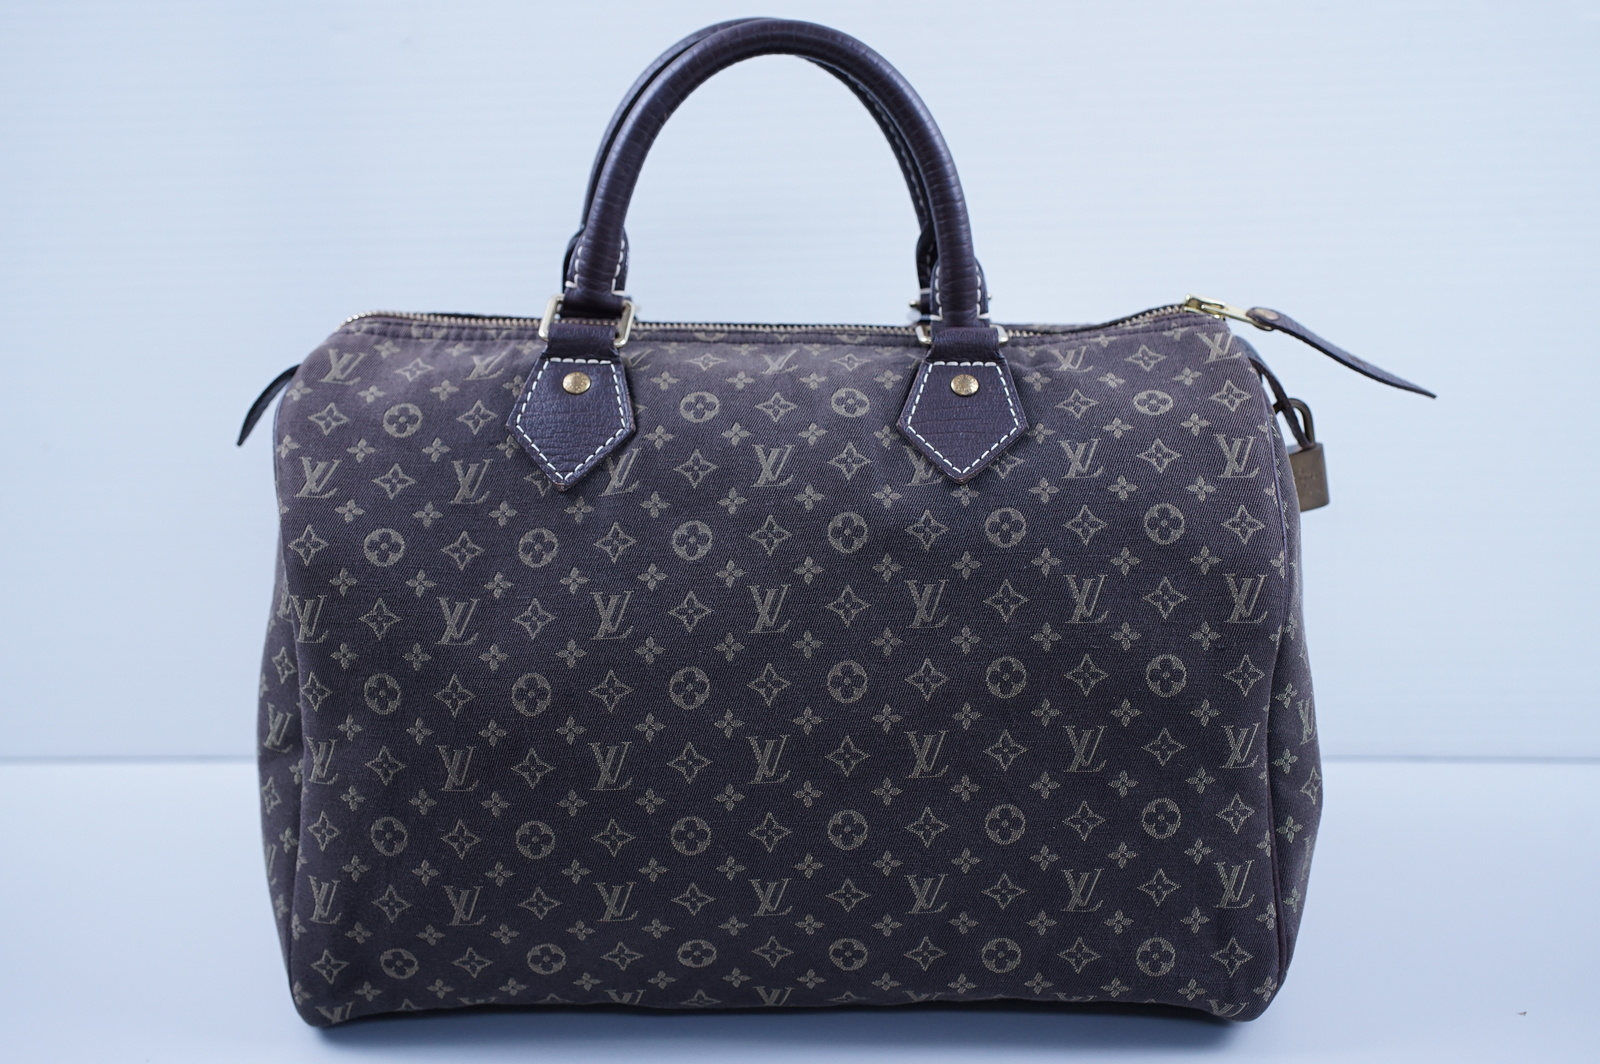 newest e1ba9 ff870 ☆送料無料☆本物極美品 LouisVuitton ルイヴィトン スピーディ ...